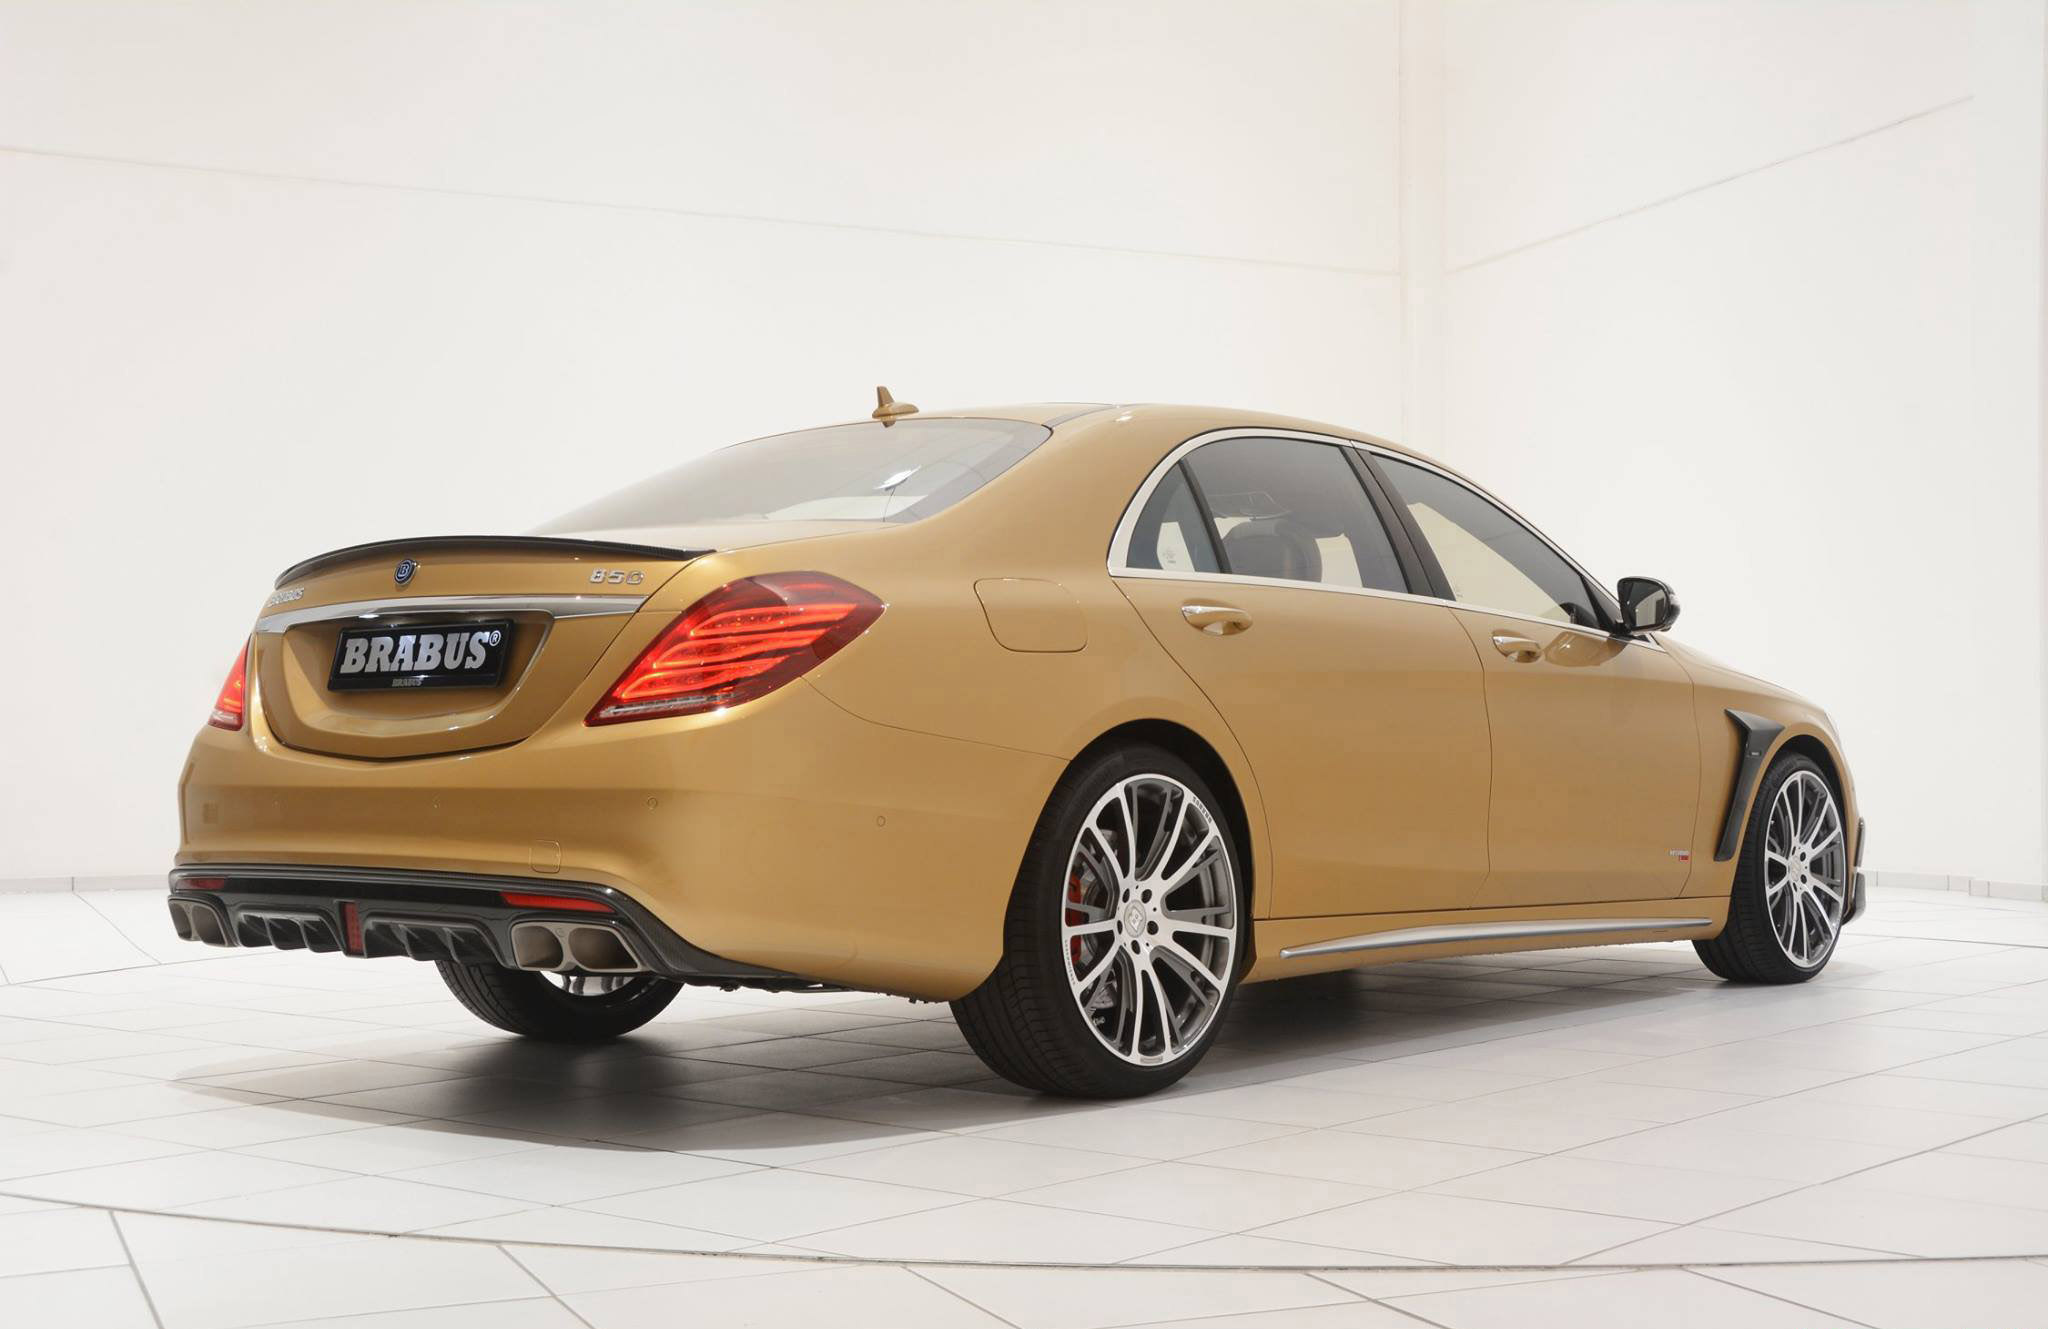 Mercedes benz s63 amg reworked by brabus for Mercedes benz s 63 amg